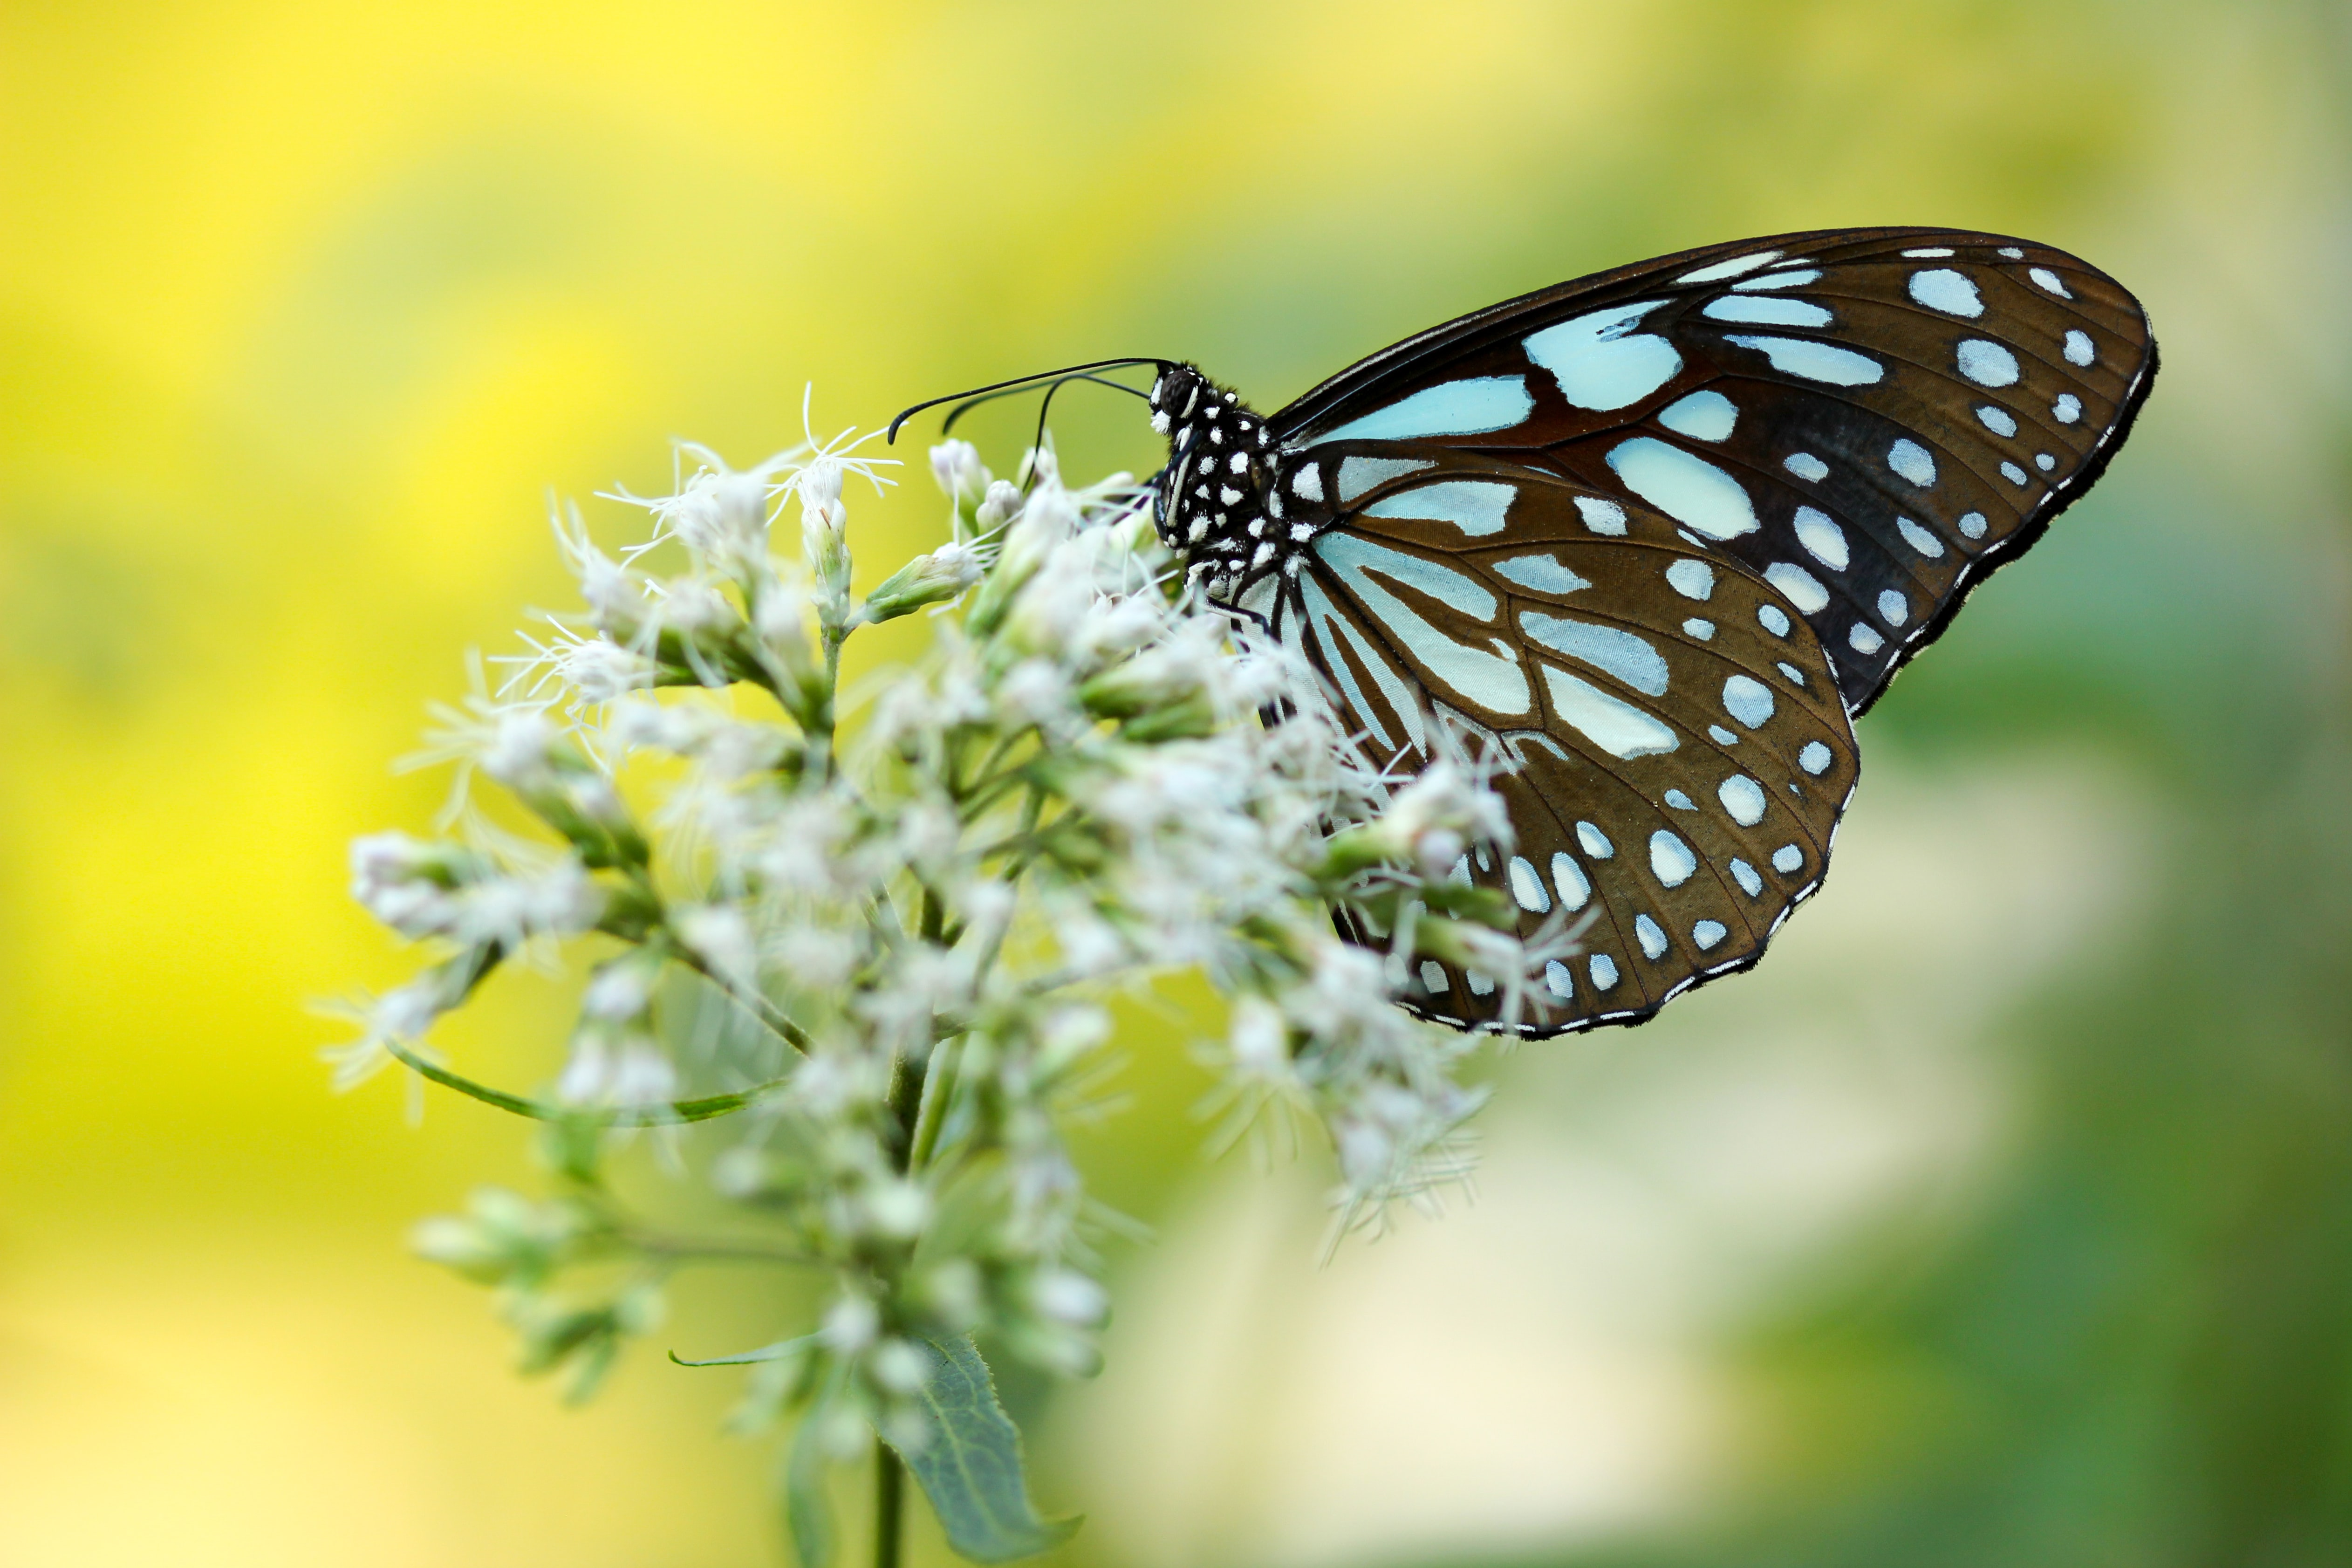 brown and blue butterfly pollinating on white petaled flower